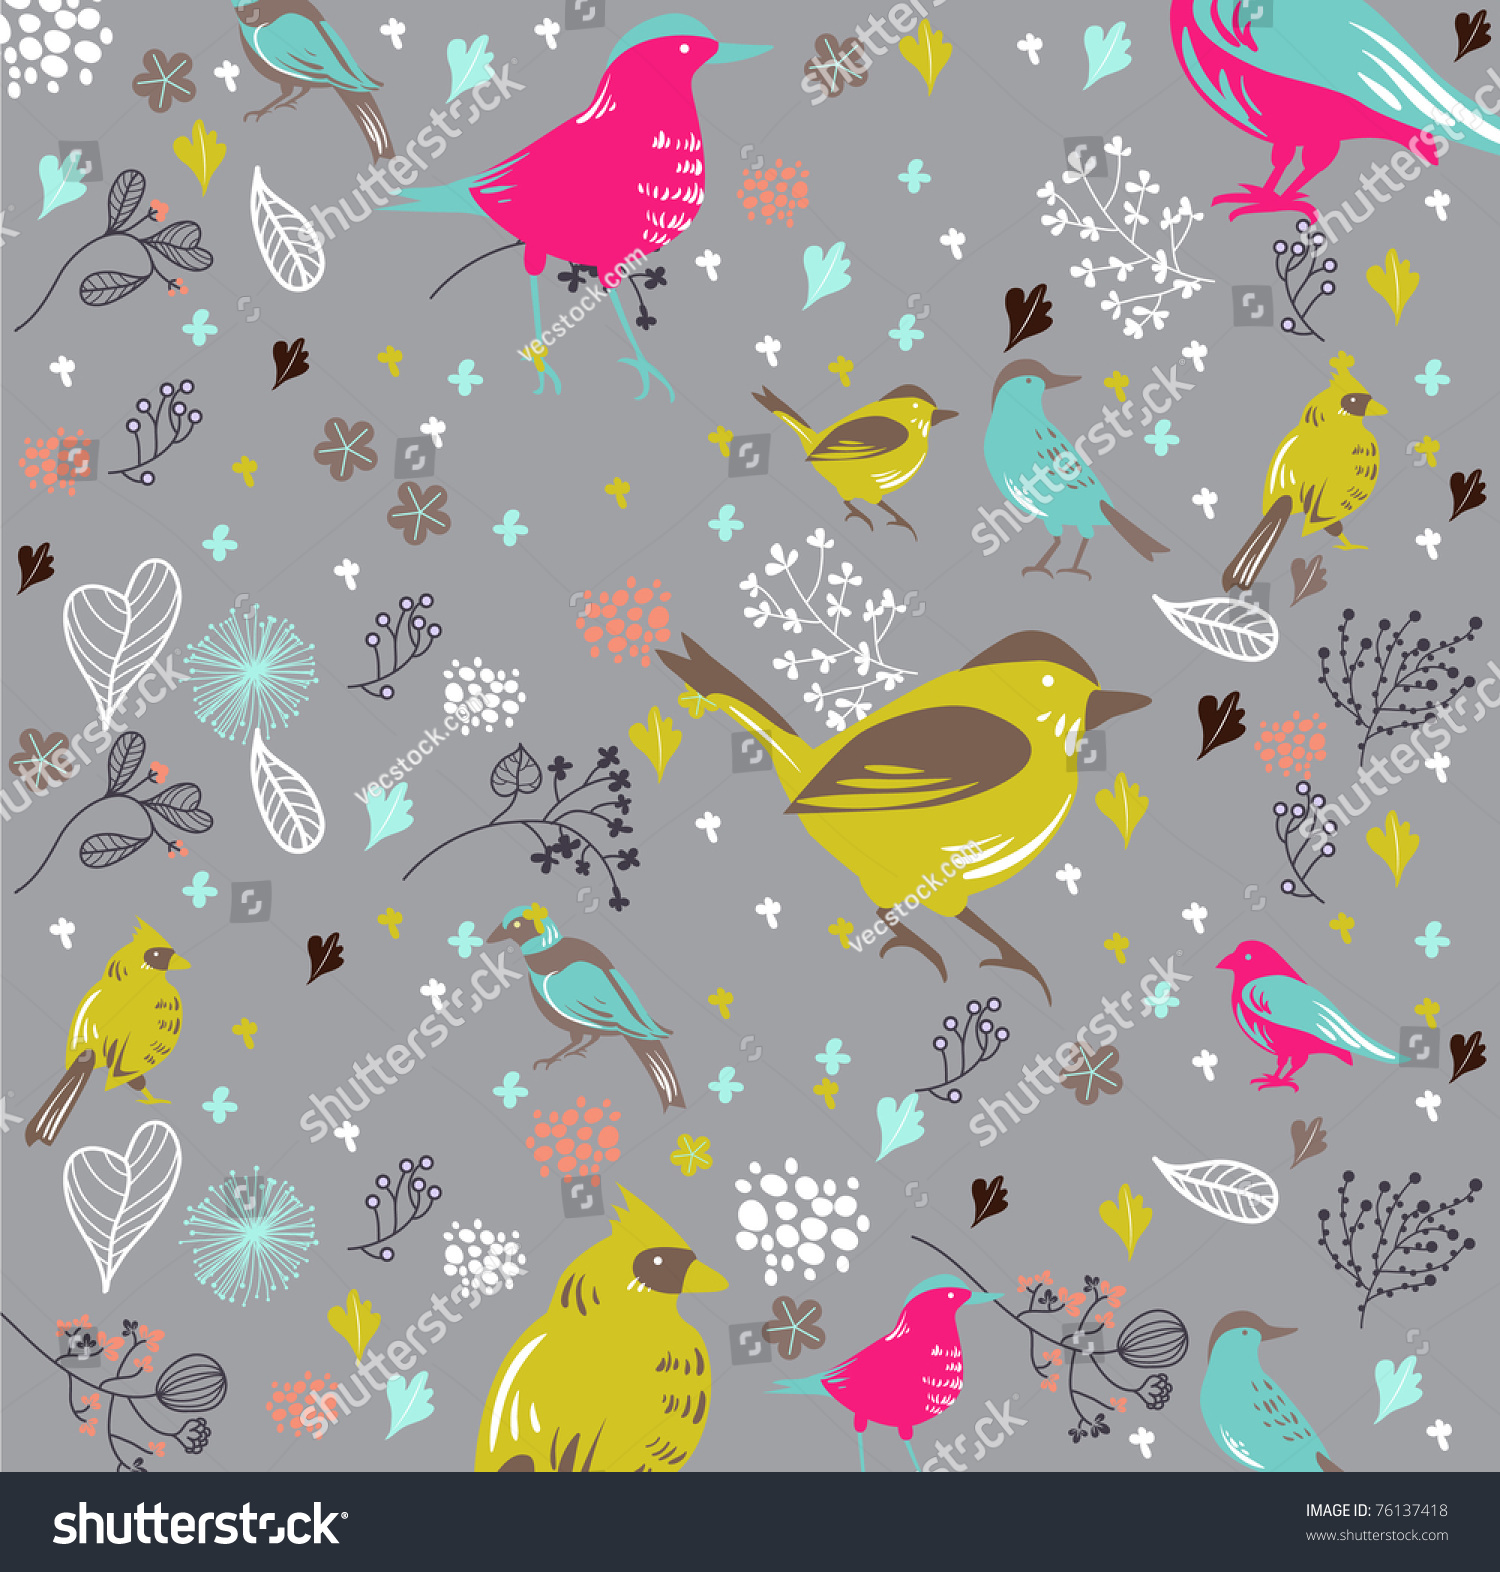 Download Wallpaper High Quality Vintage - stock-vector-bird-wallpaper-best-card-design-vintage-cover-hand-drawn-and-very-high-quality-76137418  Best Photo Reference_1002922.jpg